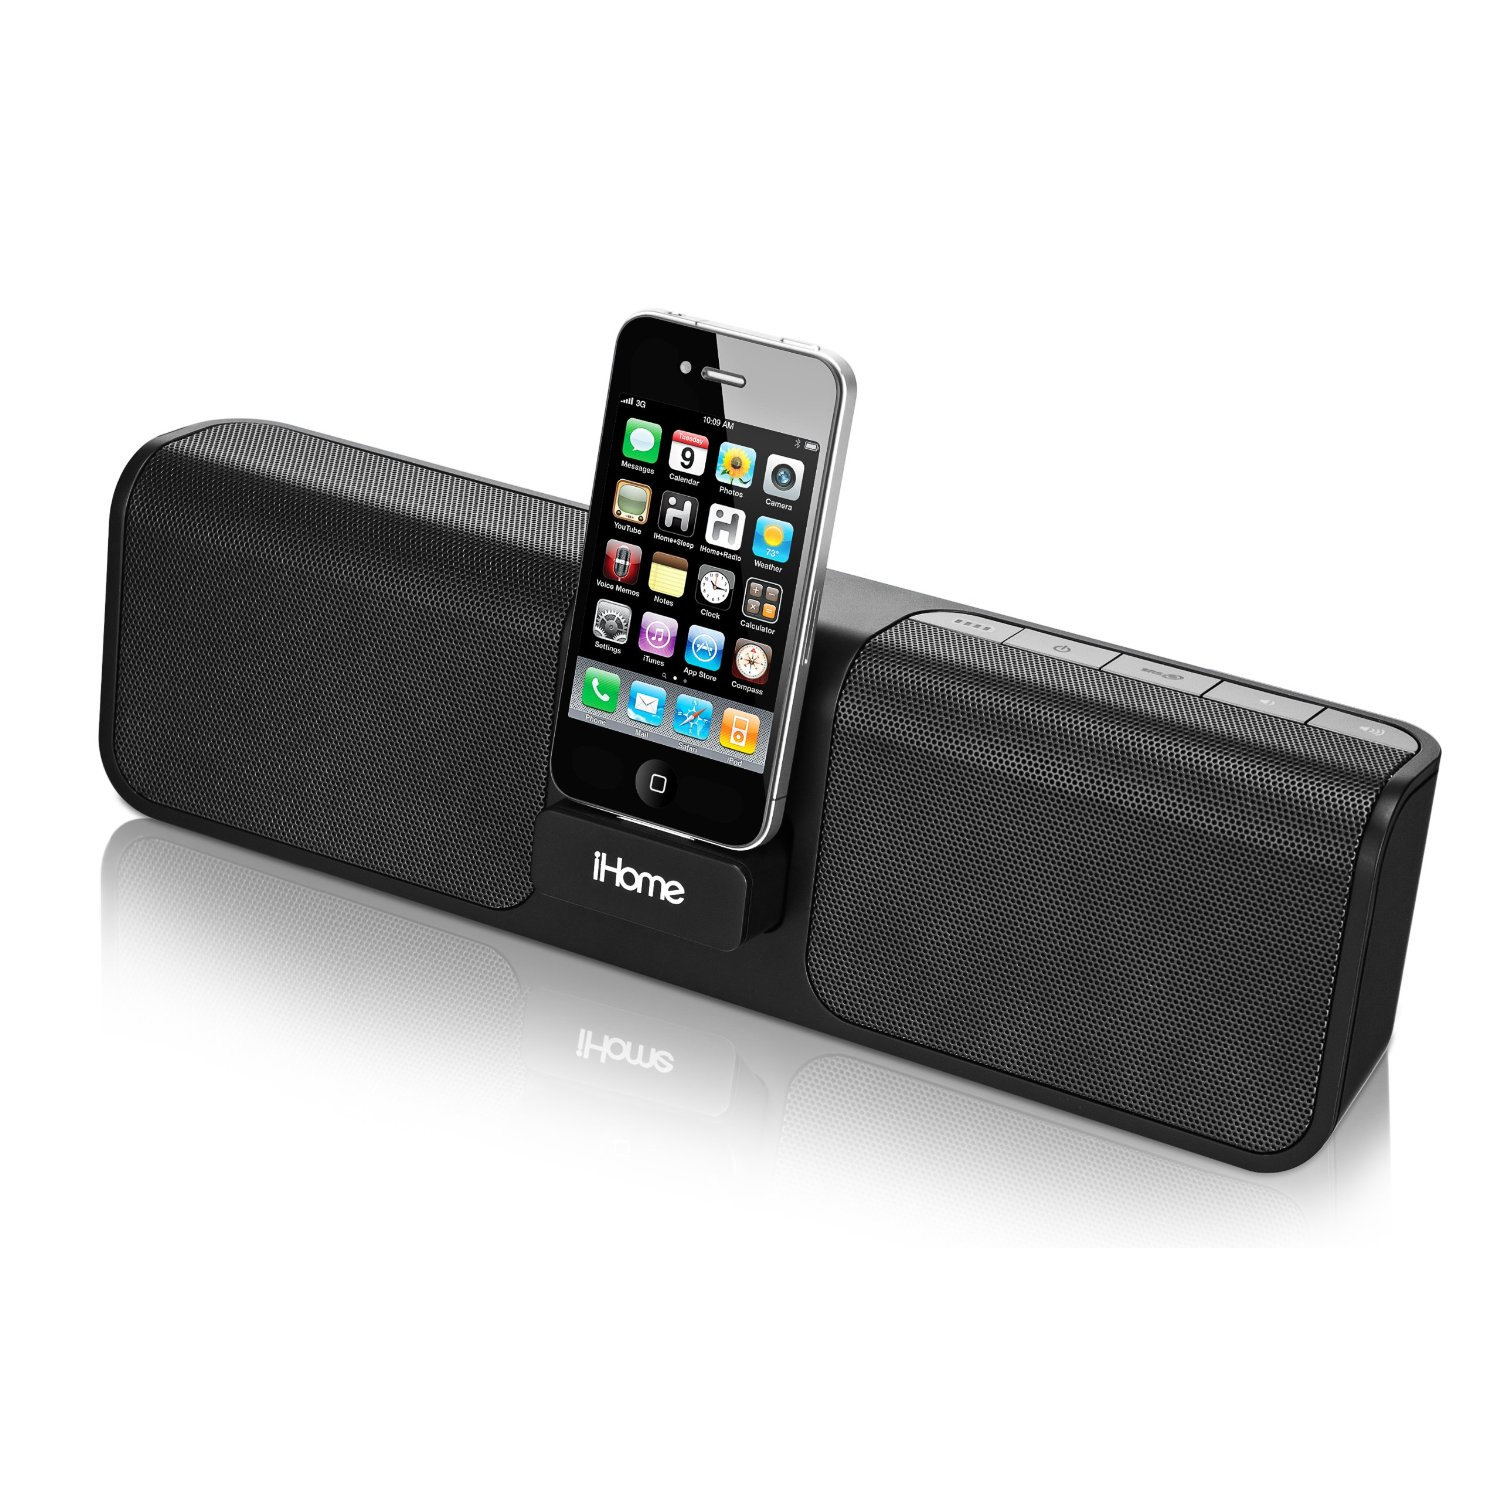 iHome iP46 Portable Speaker System for iPod - Black